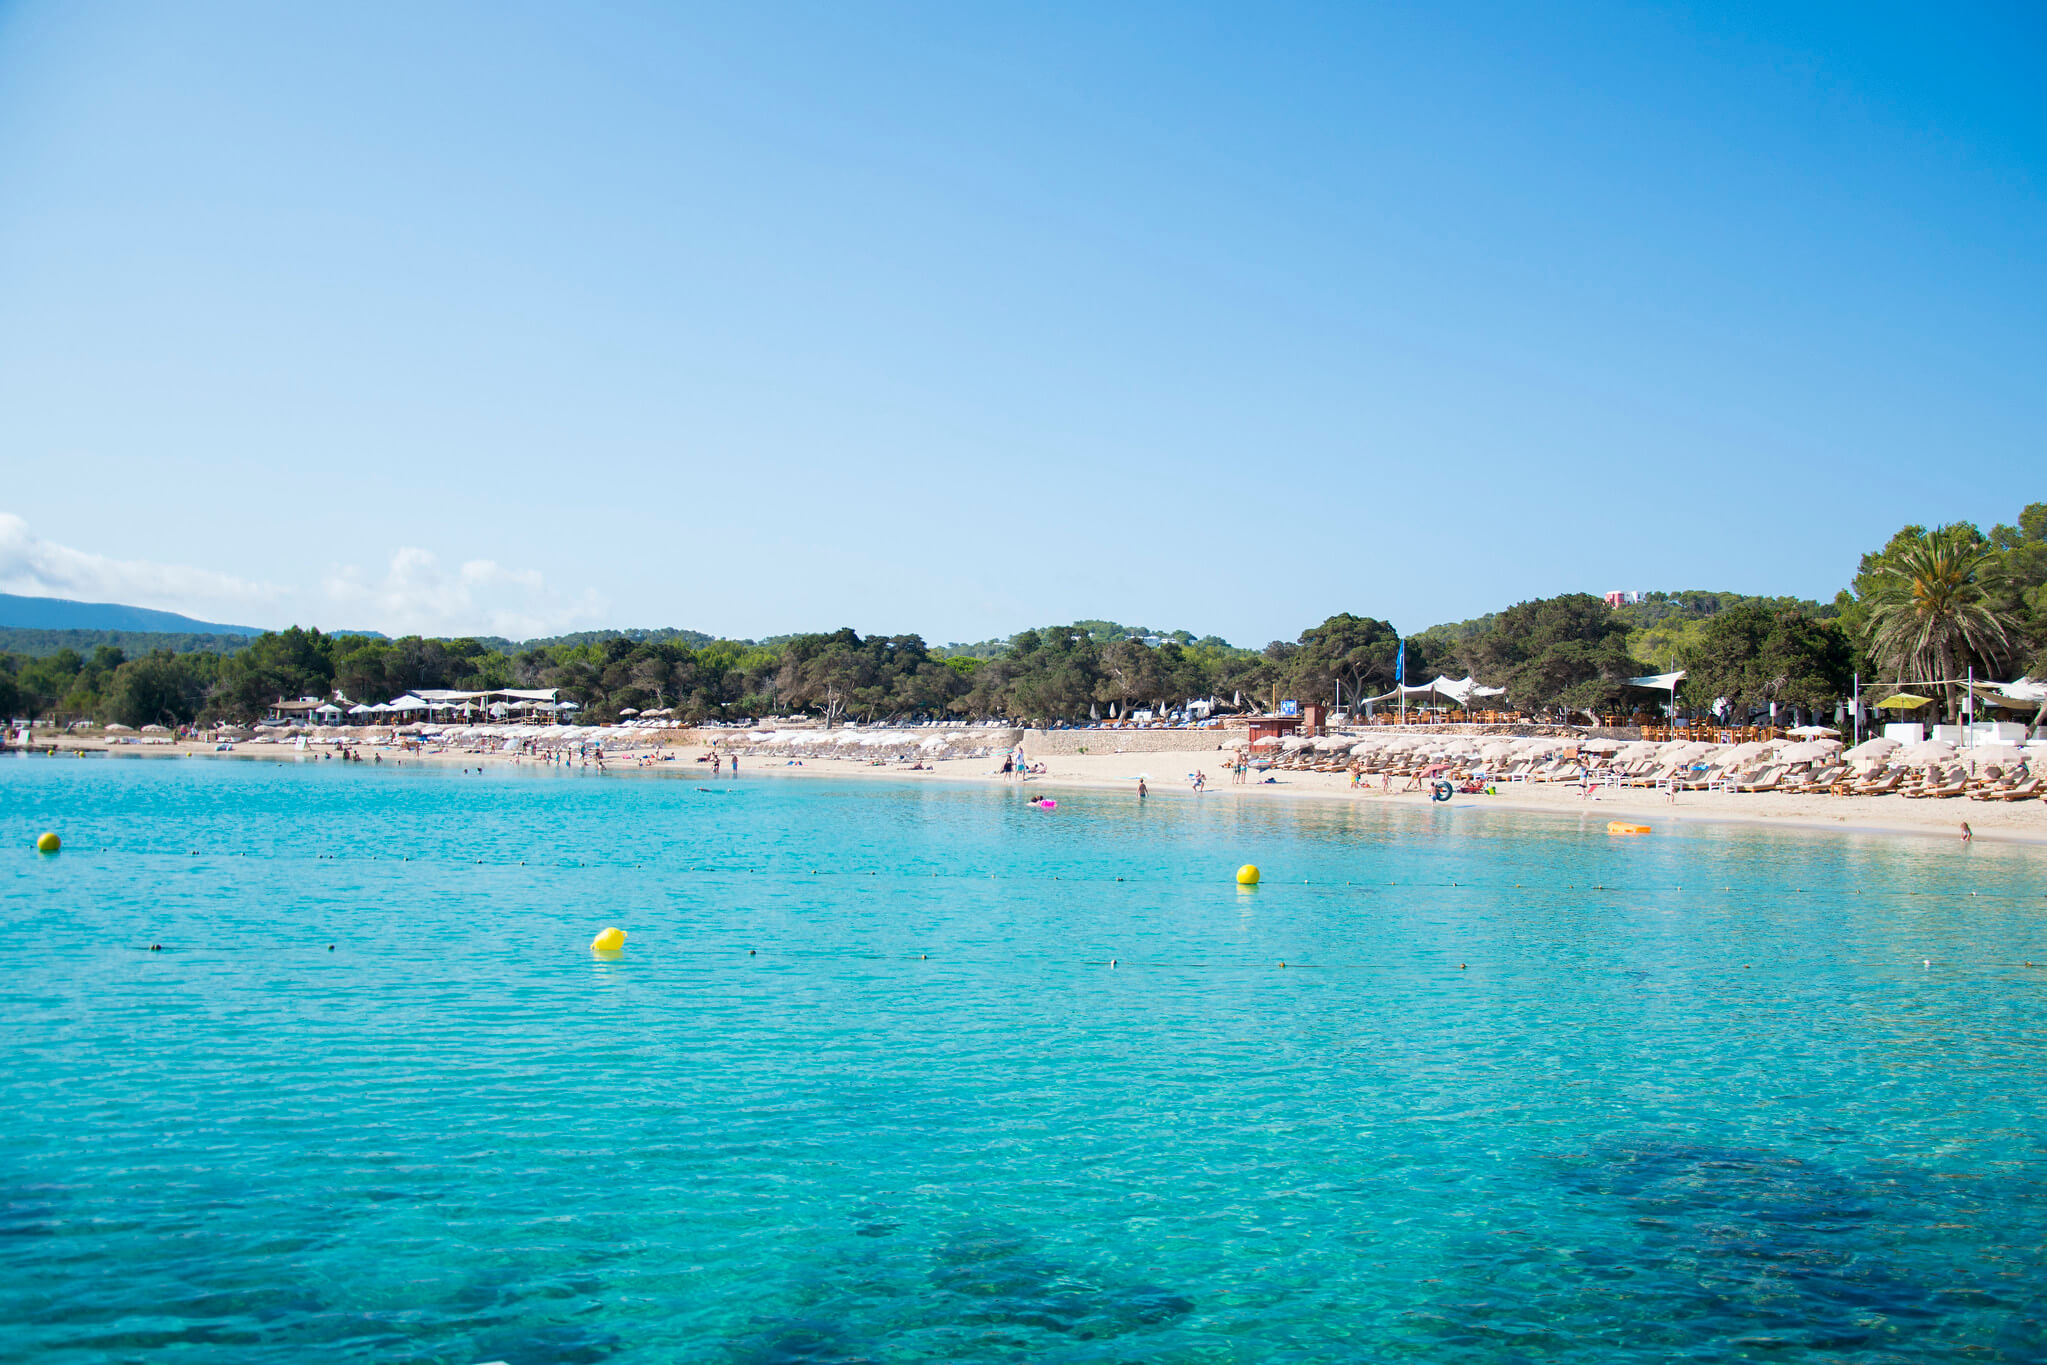 https://www.white-ibiza.com/wp-content/uploads/2020/03/ibiza-beaches-cala-bassa-04.jpg